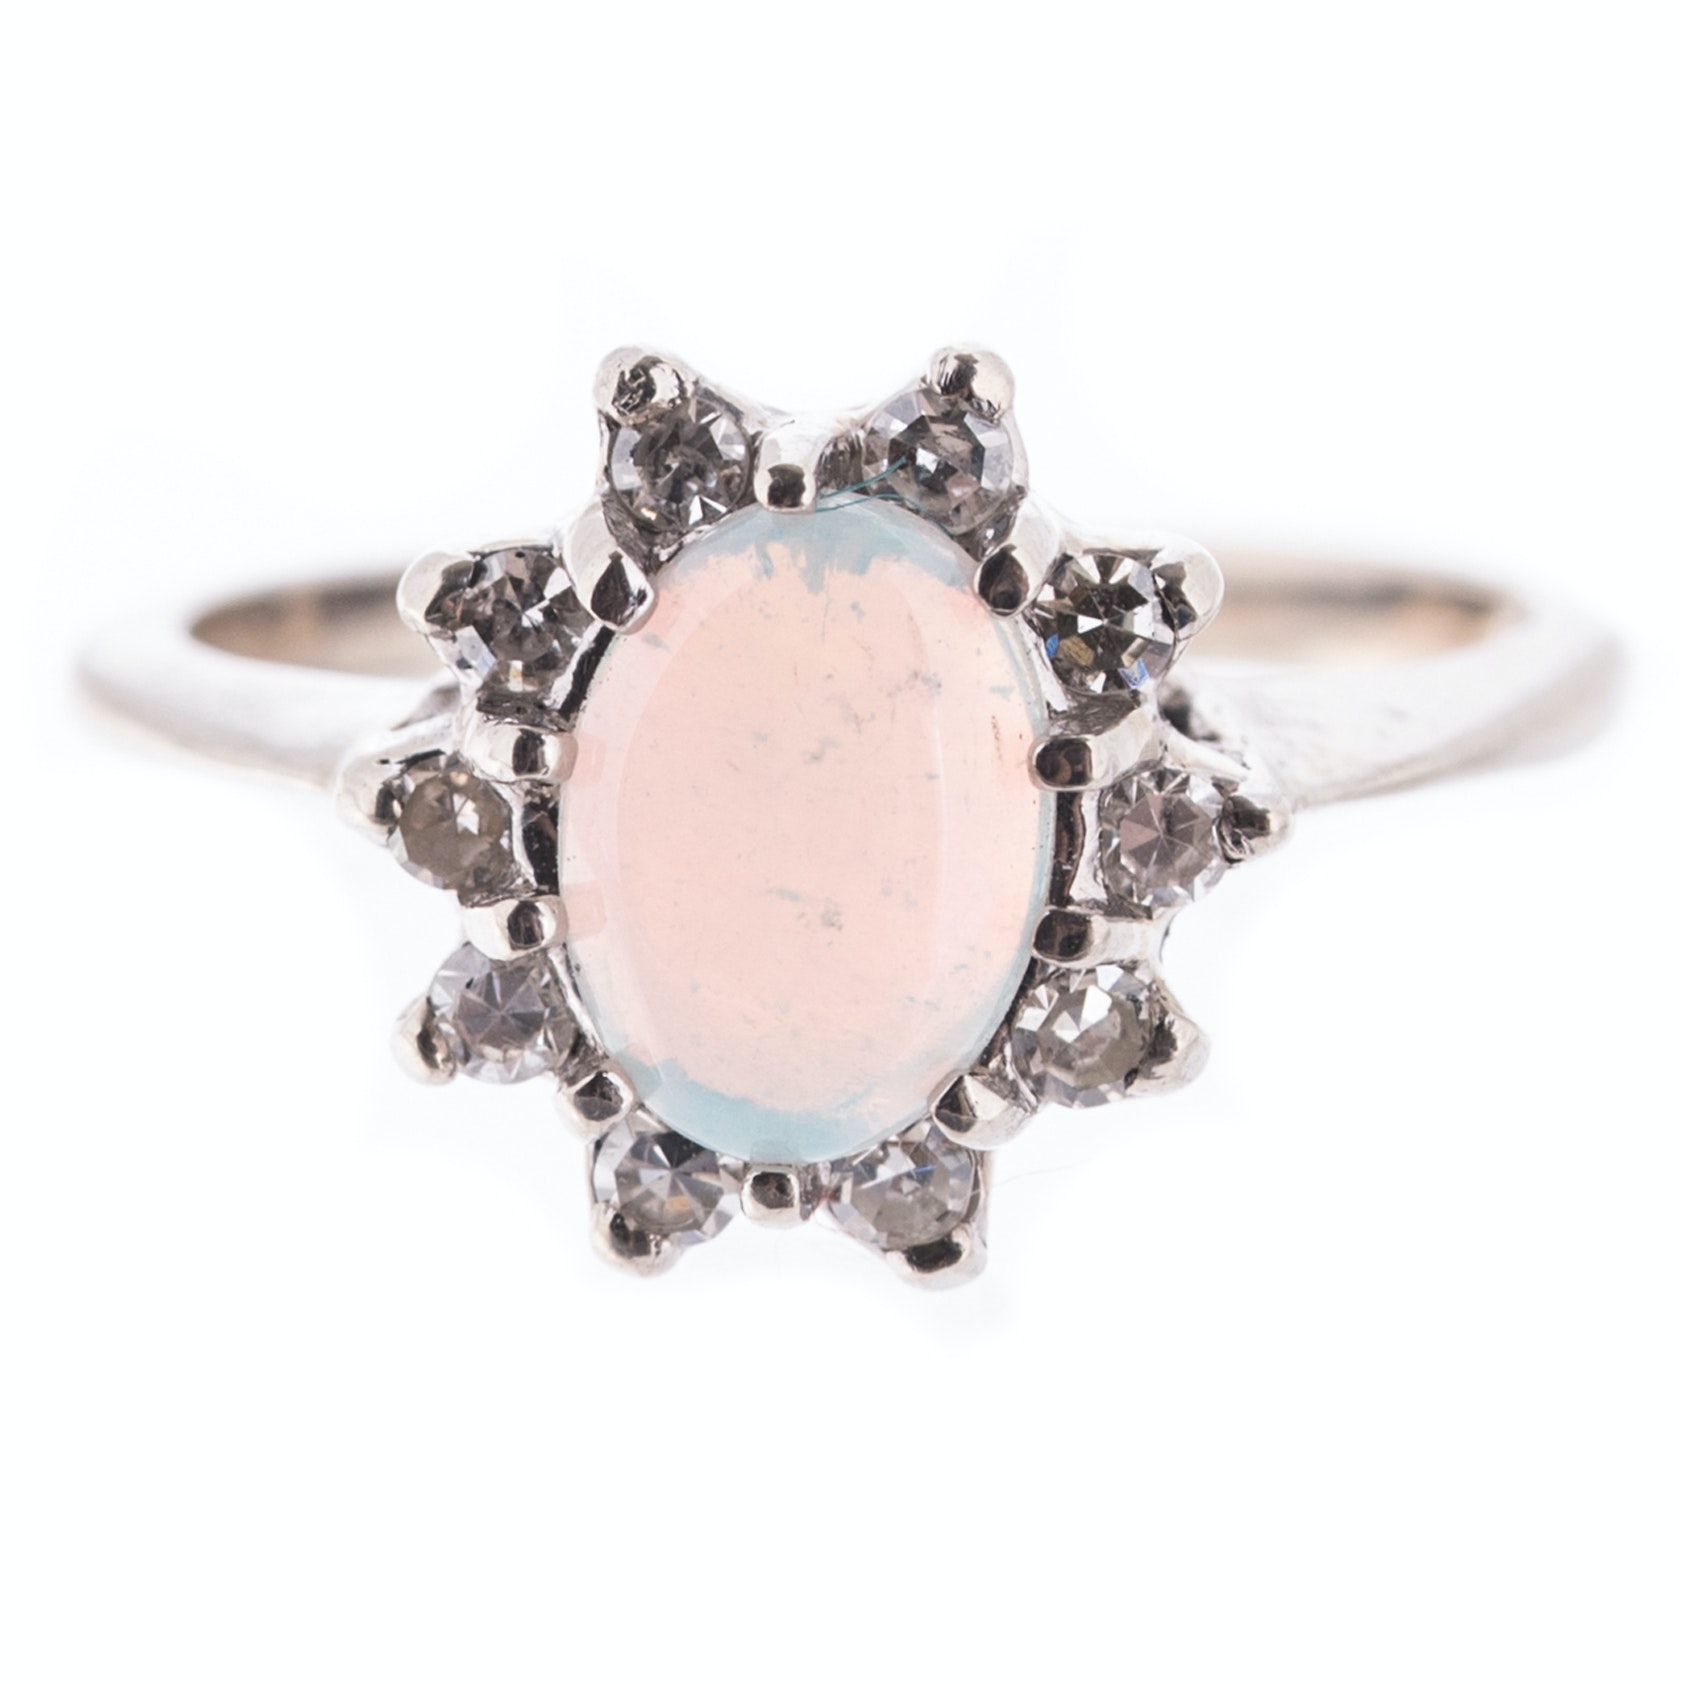 14K White Gold, Opal, and Diamond Halo Ring